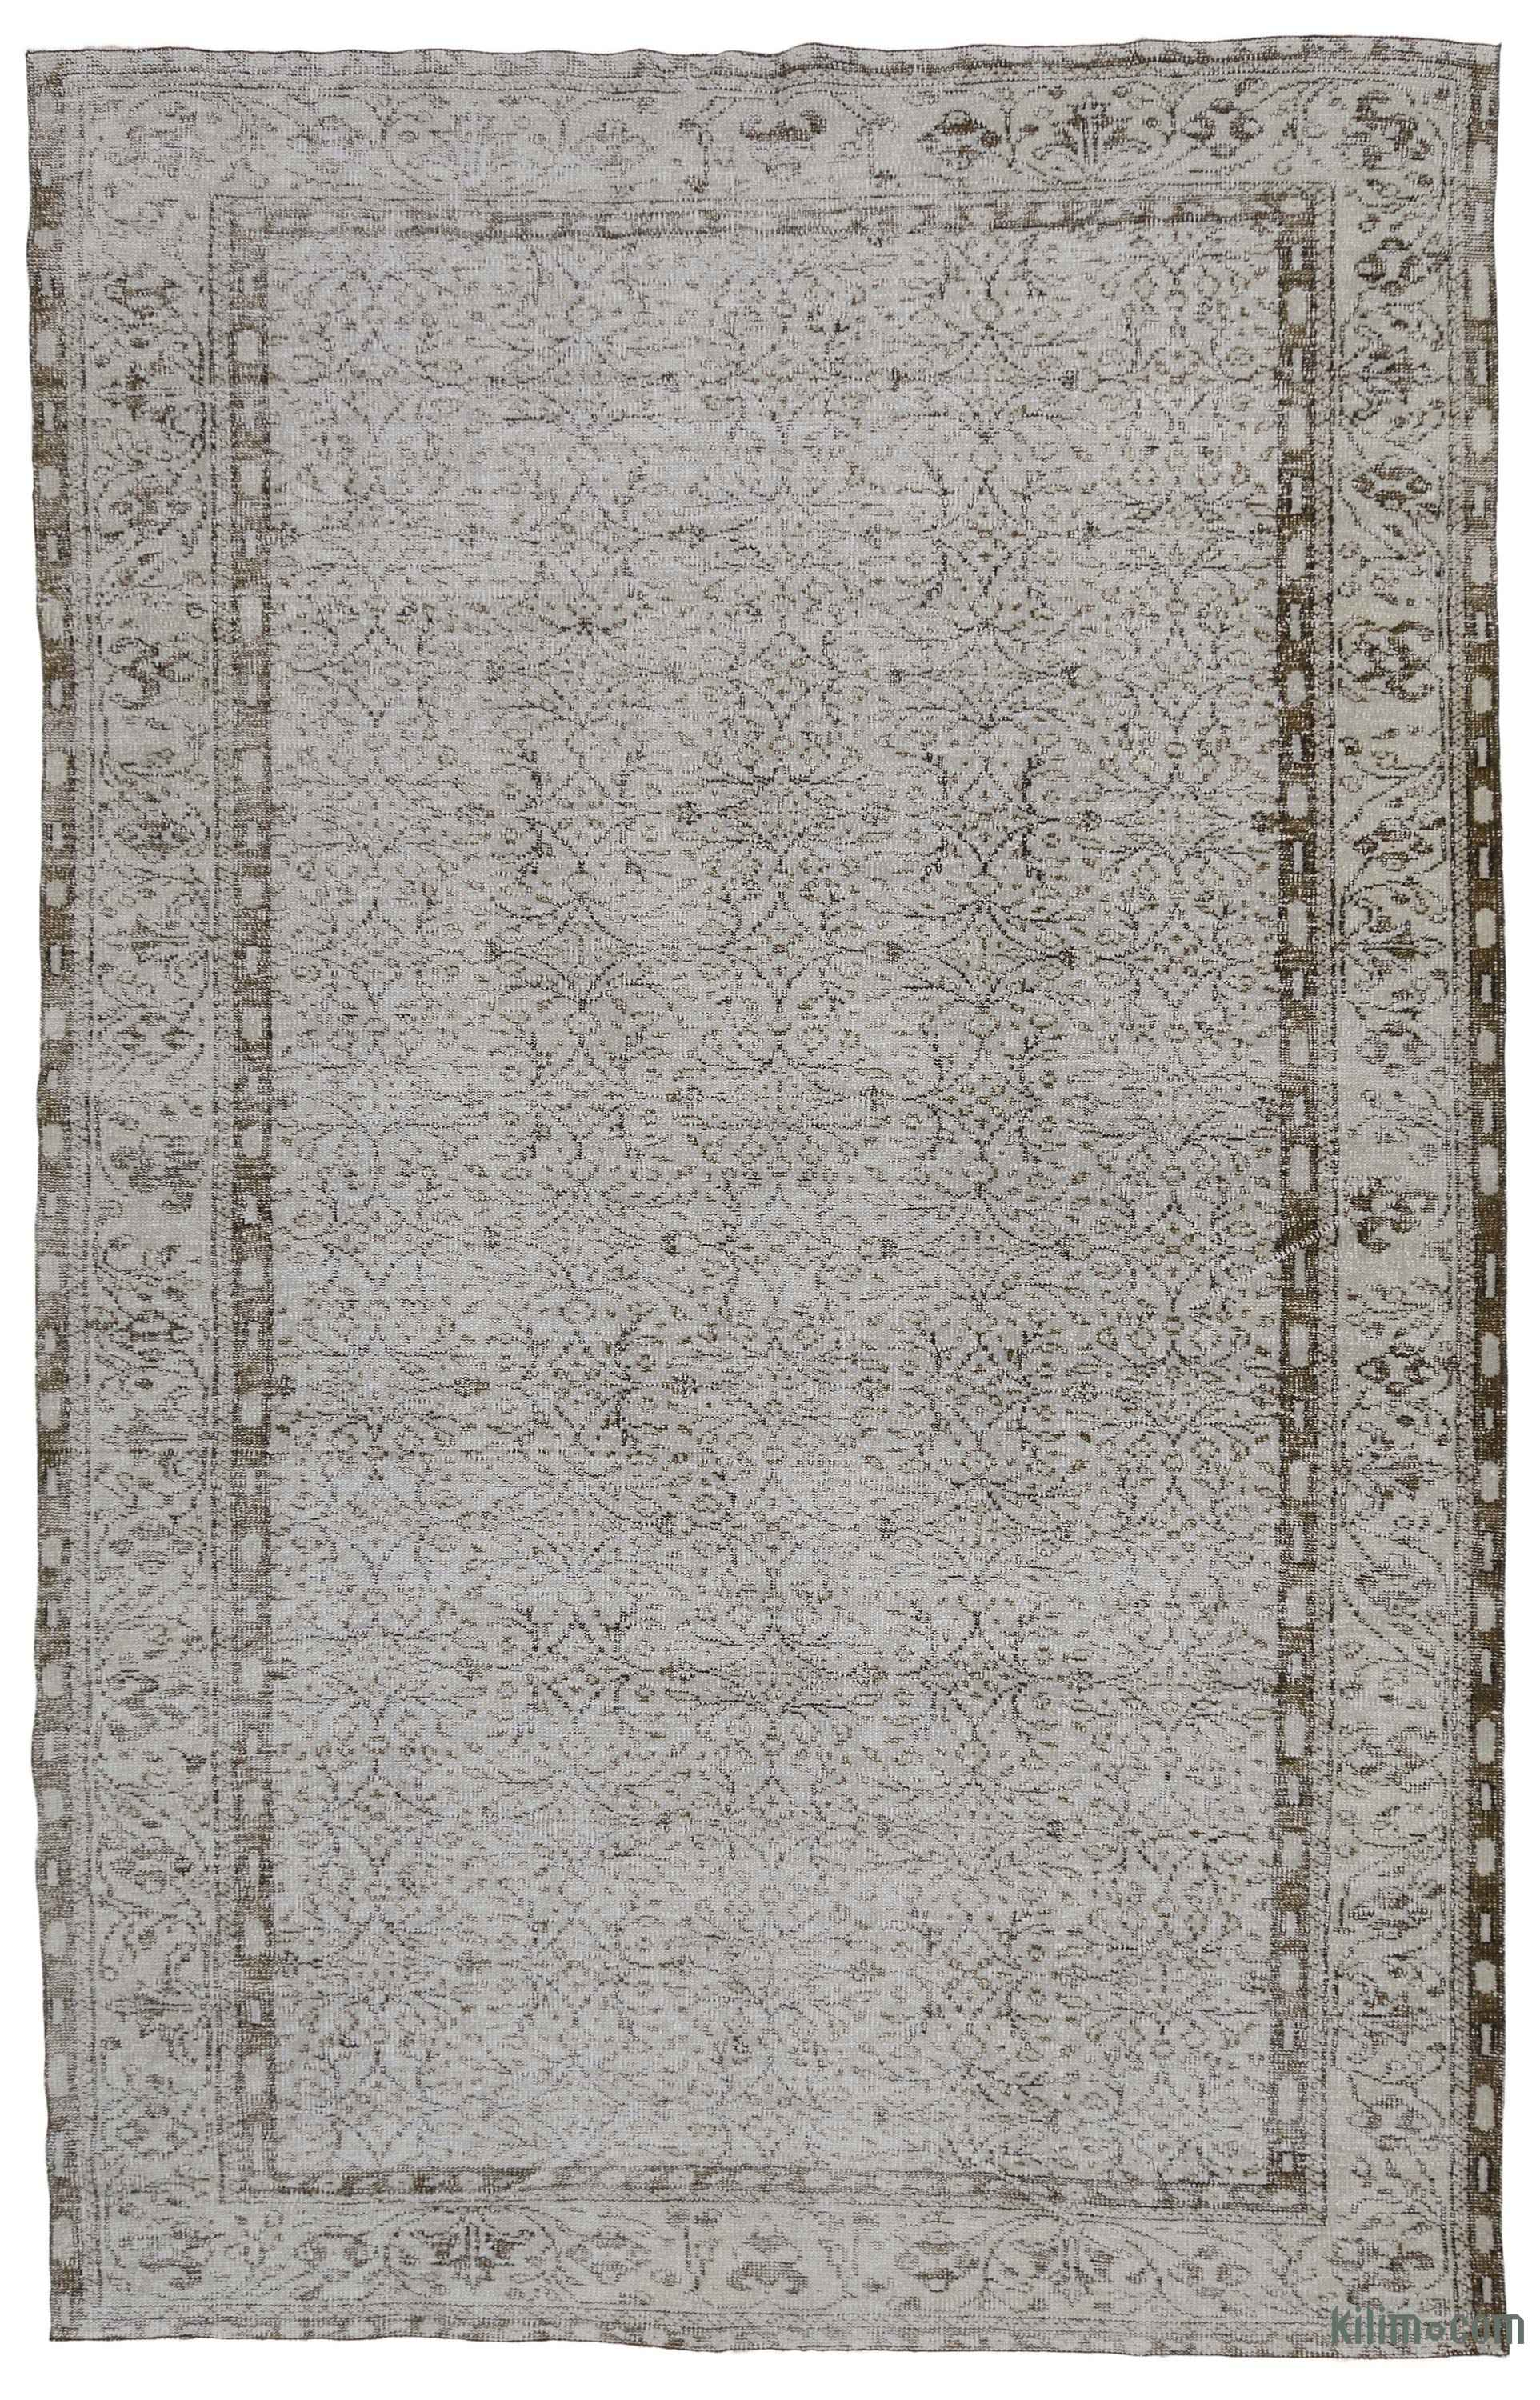 K0035073 Grey Over Dyed Turkish Vintage Rug 6 7 X 10 3 79 In 123 Kilim The Source For Authentic Rugs Kilims